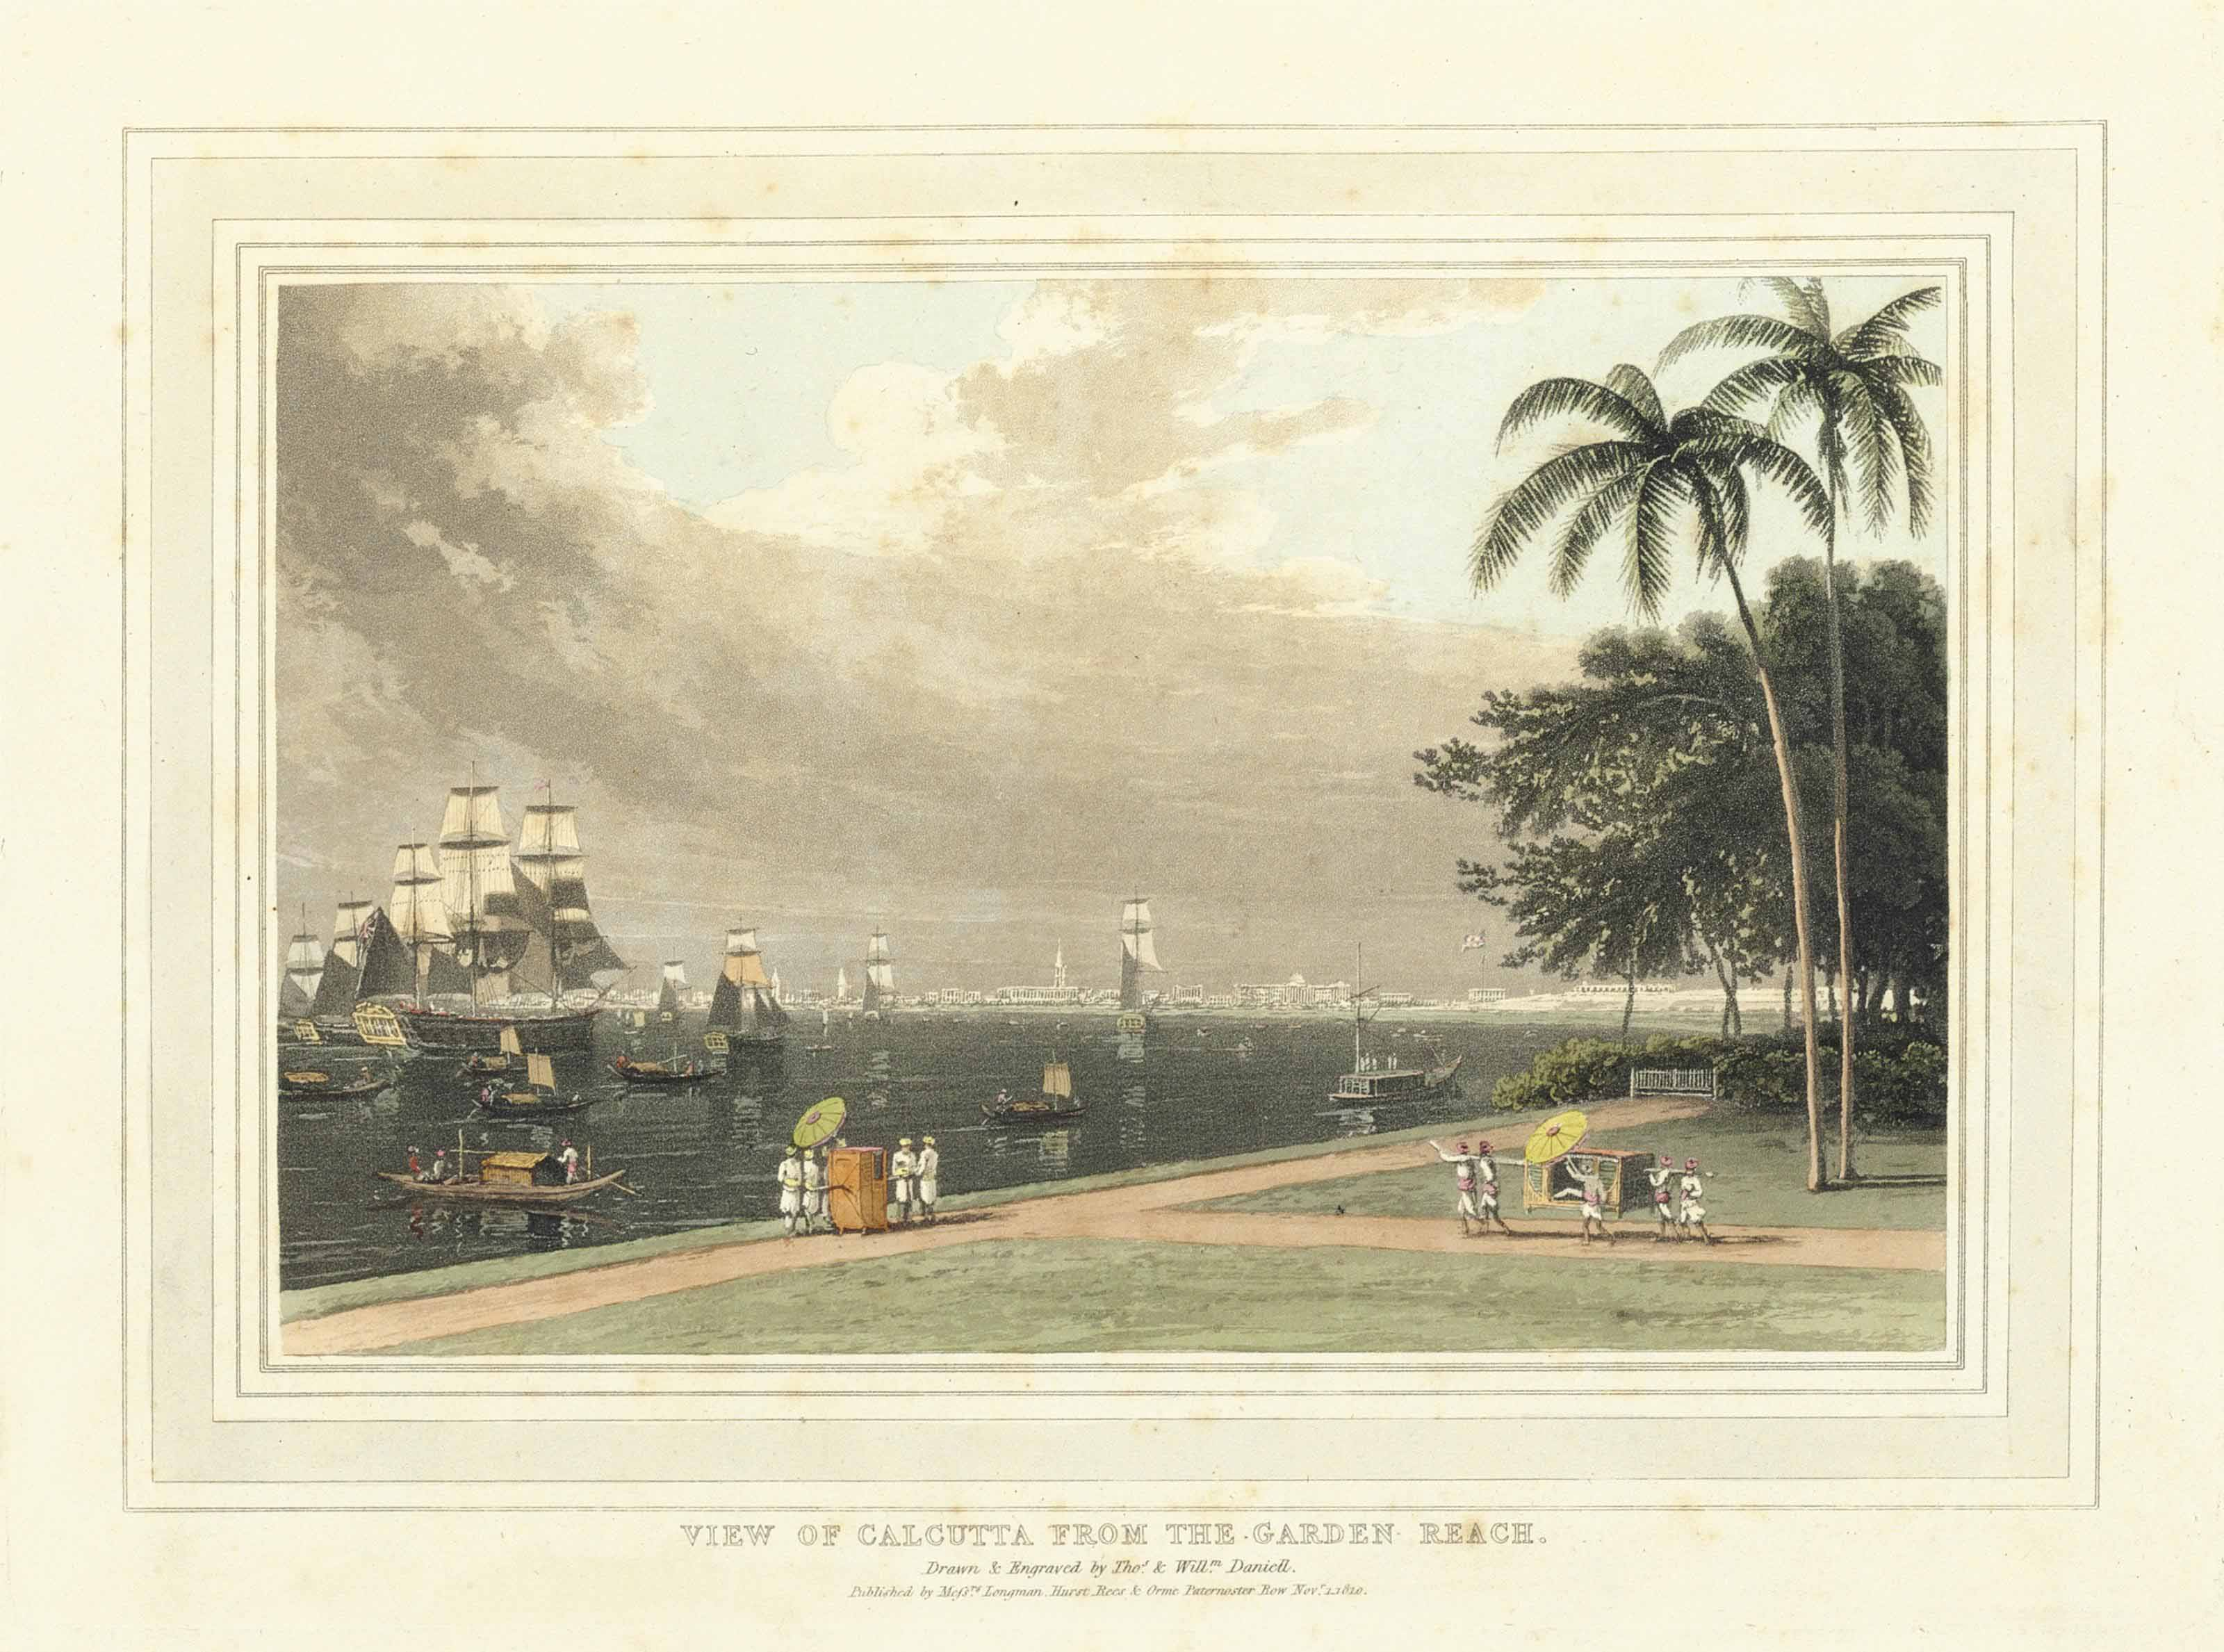 DANIELL, Thomas (1749-1840) and William (1769-1837). A Picturesque Voyage to India; by the way of China. London: Longman, Hurst, Rees, Orme and William Daniell, 1810 (text watermarked 1808).